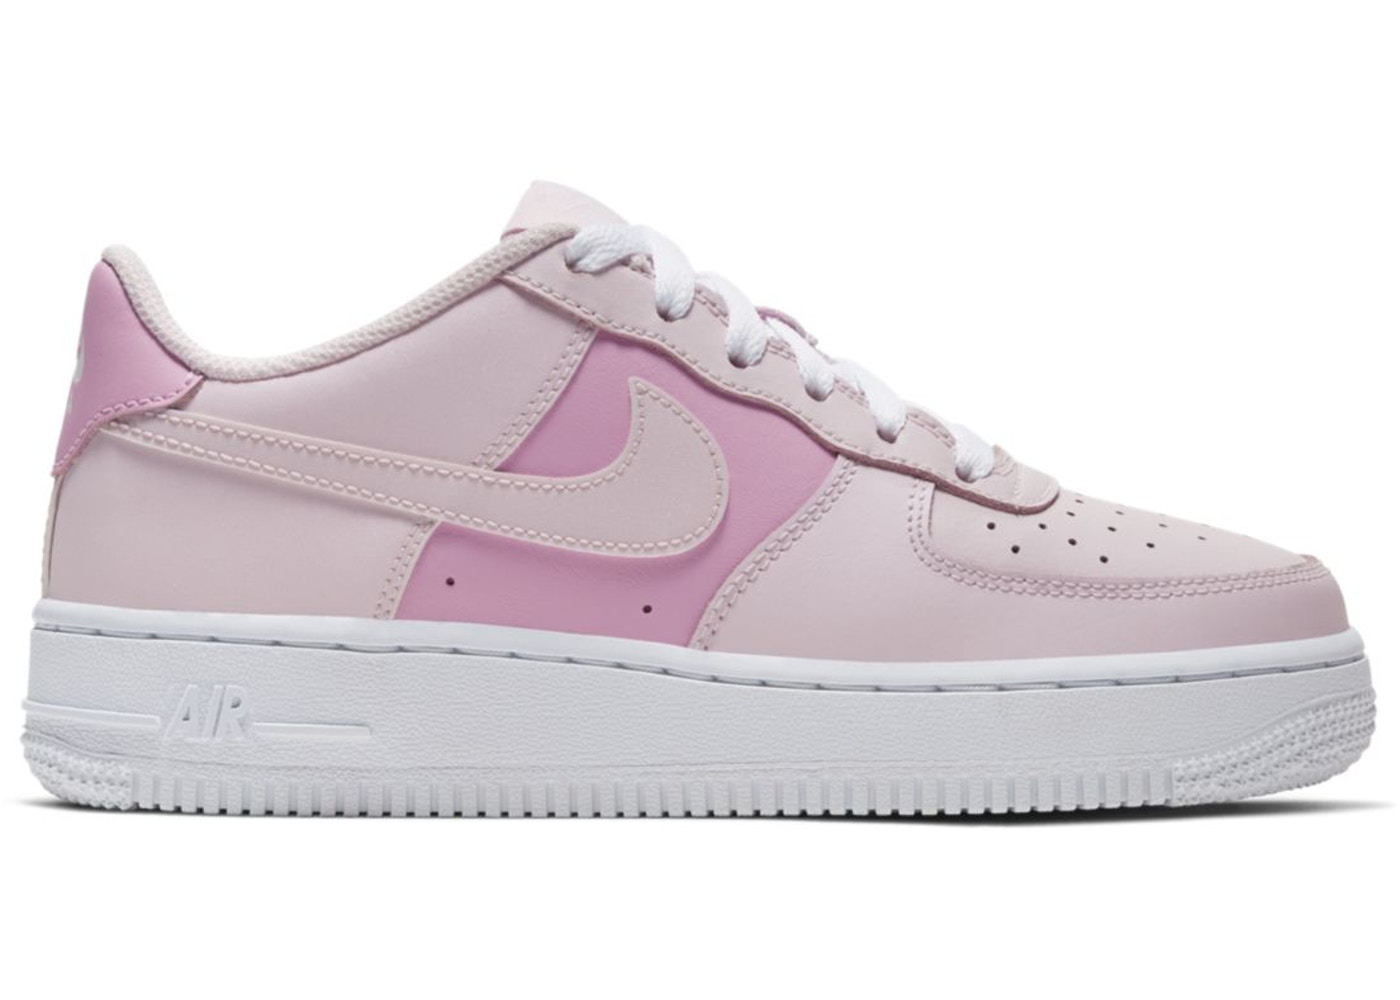 Peep The Floral Print On This Pink Nike Air Force 1